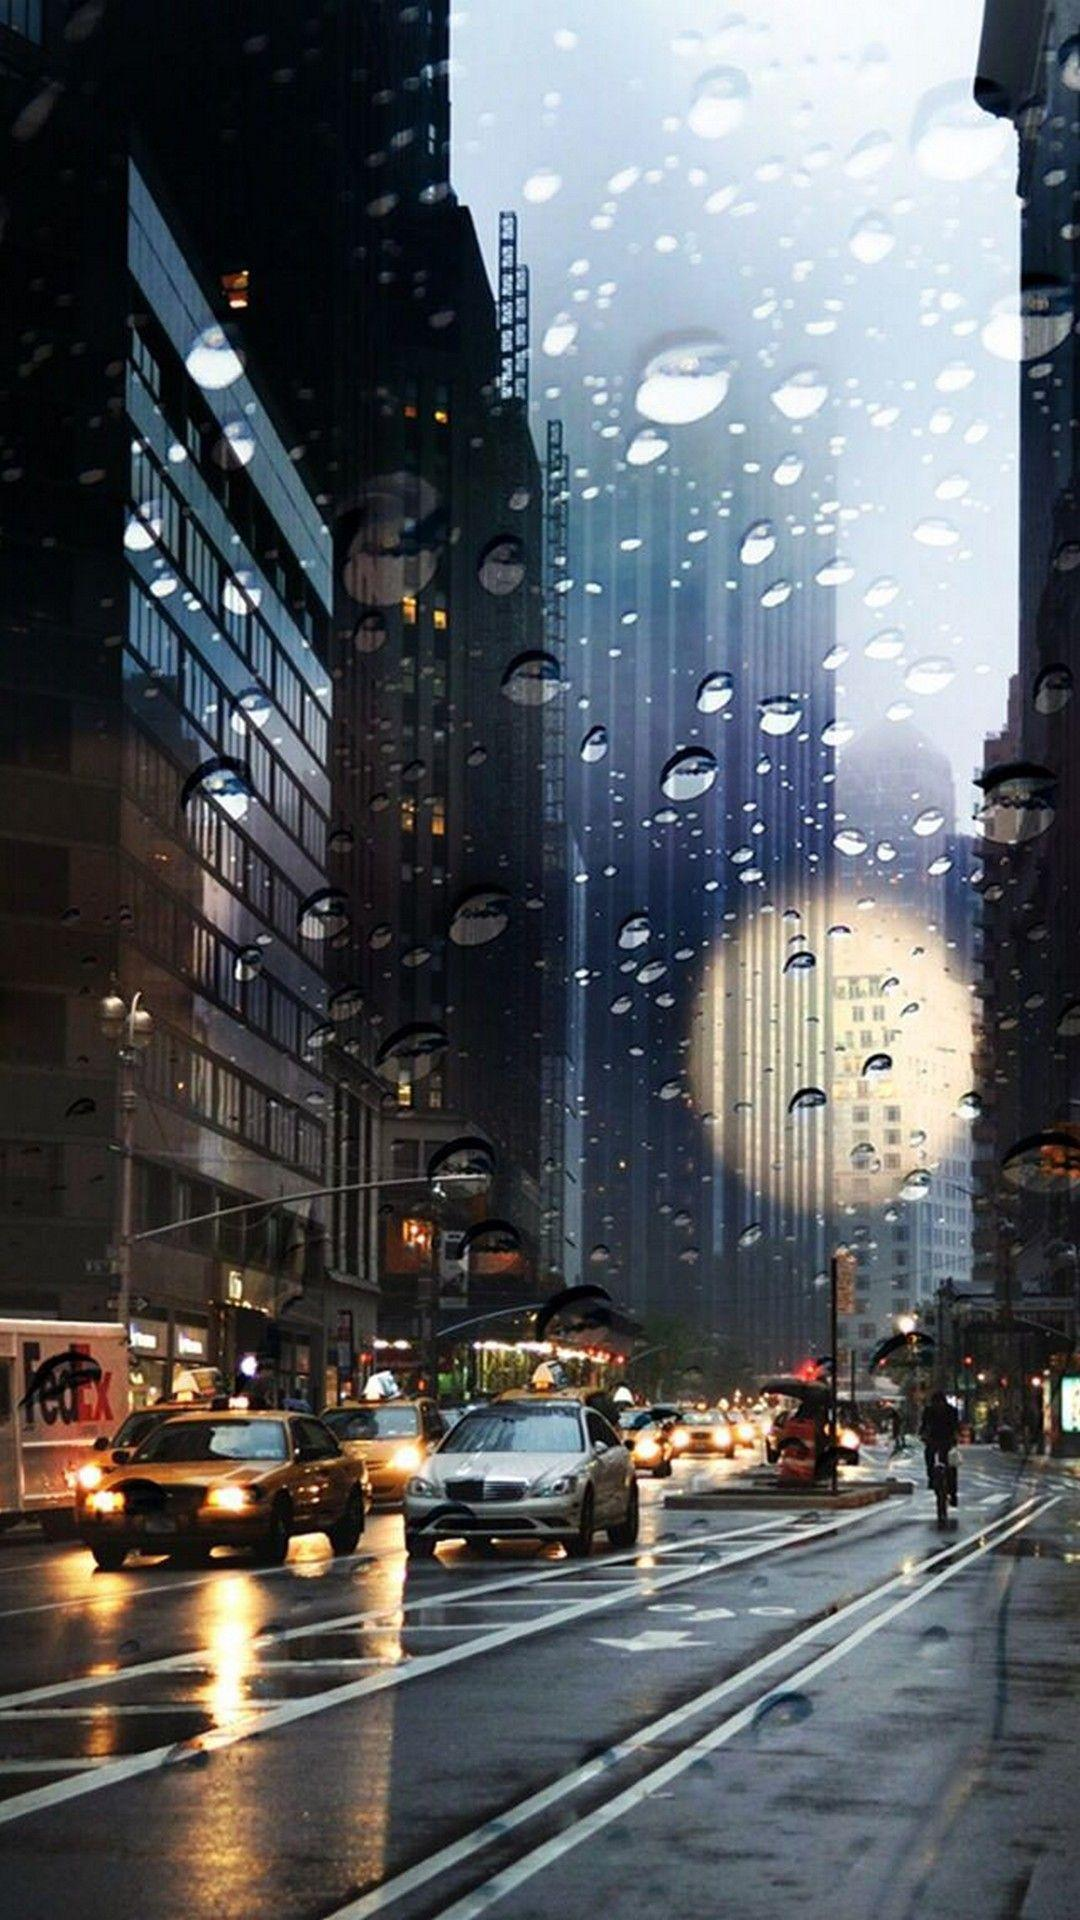 City Rain Wallpapers Wallpaper Cave